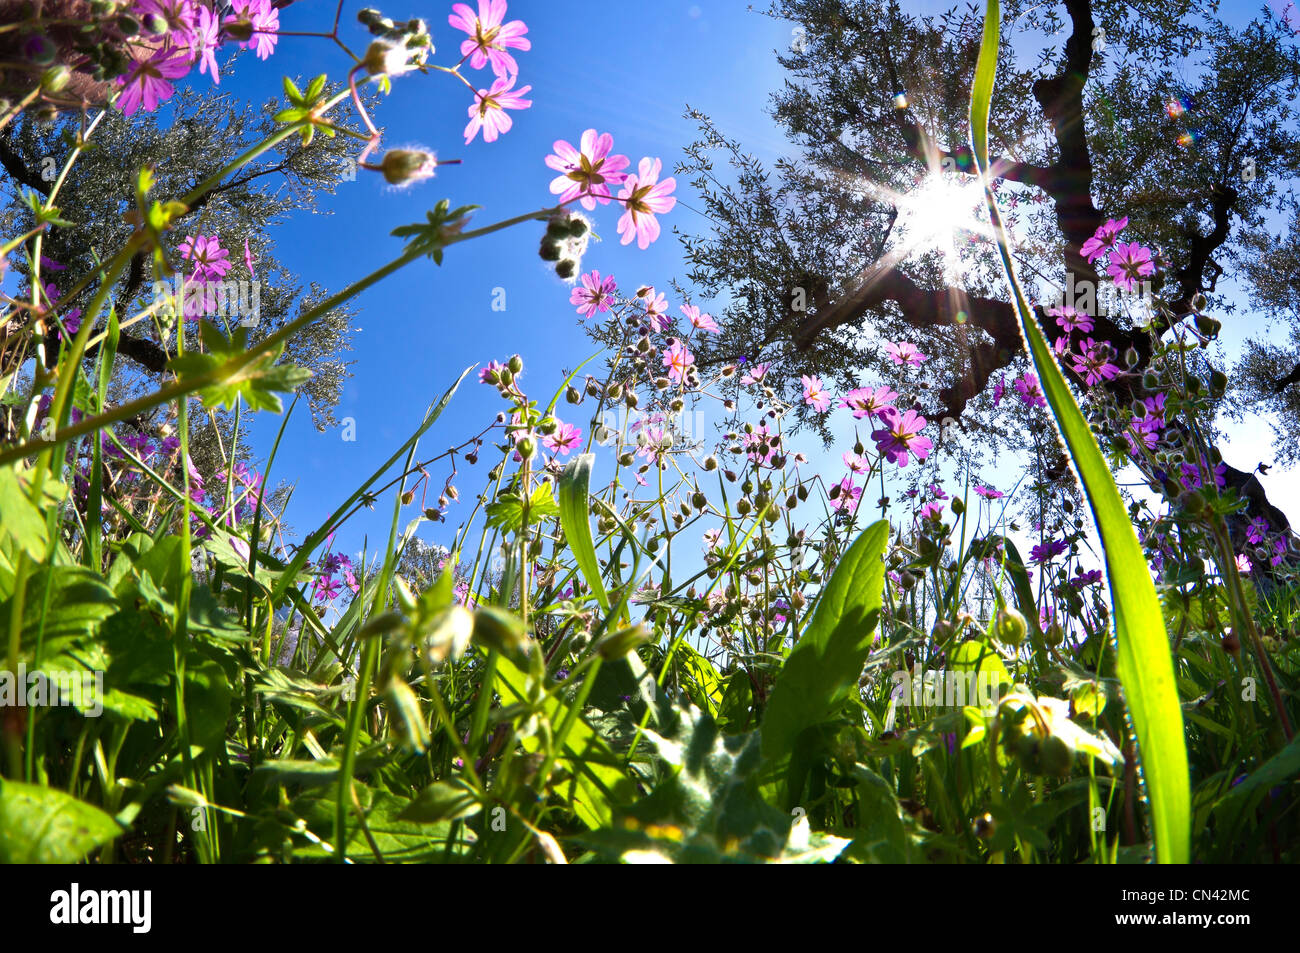 An ants eye view of spring wild flowers in the olive groves near an ants eye view of spring wild flowers in the olive groves near kardamyli in the outer mani messinia southern greece mightylinksfo